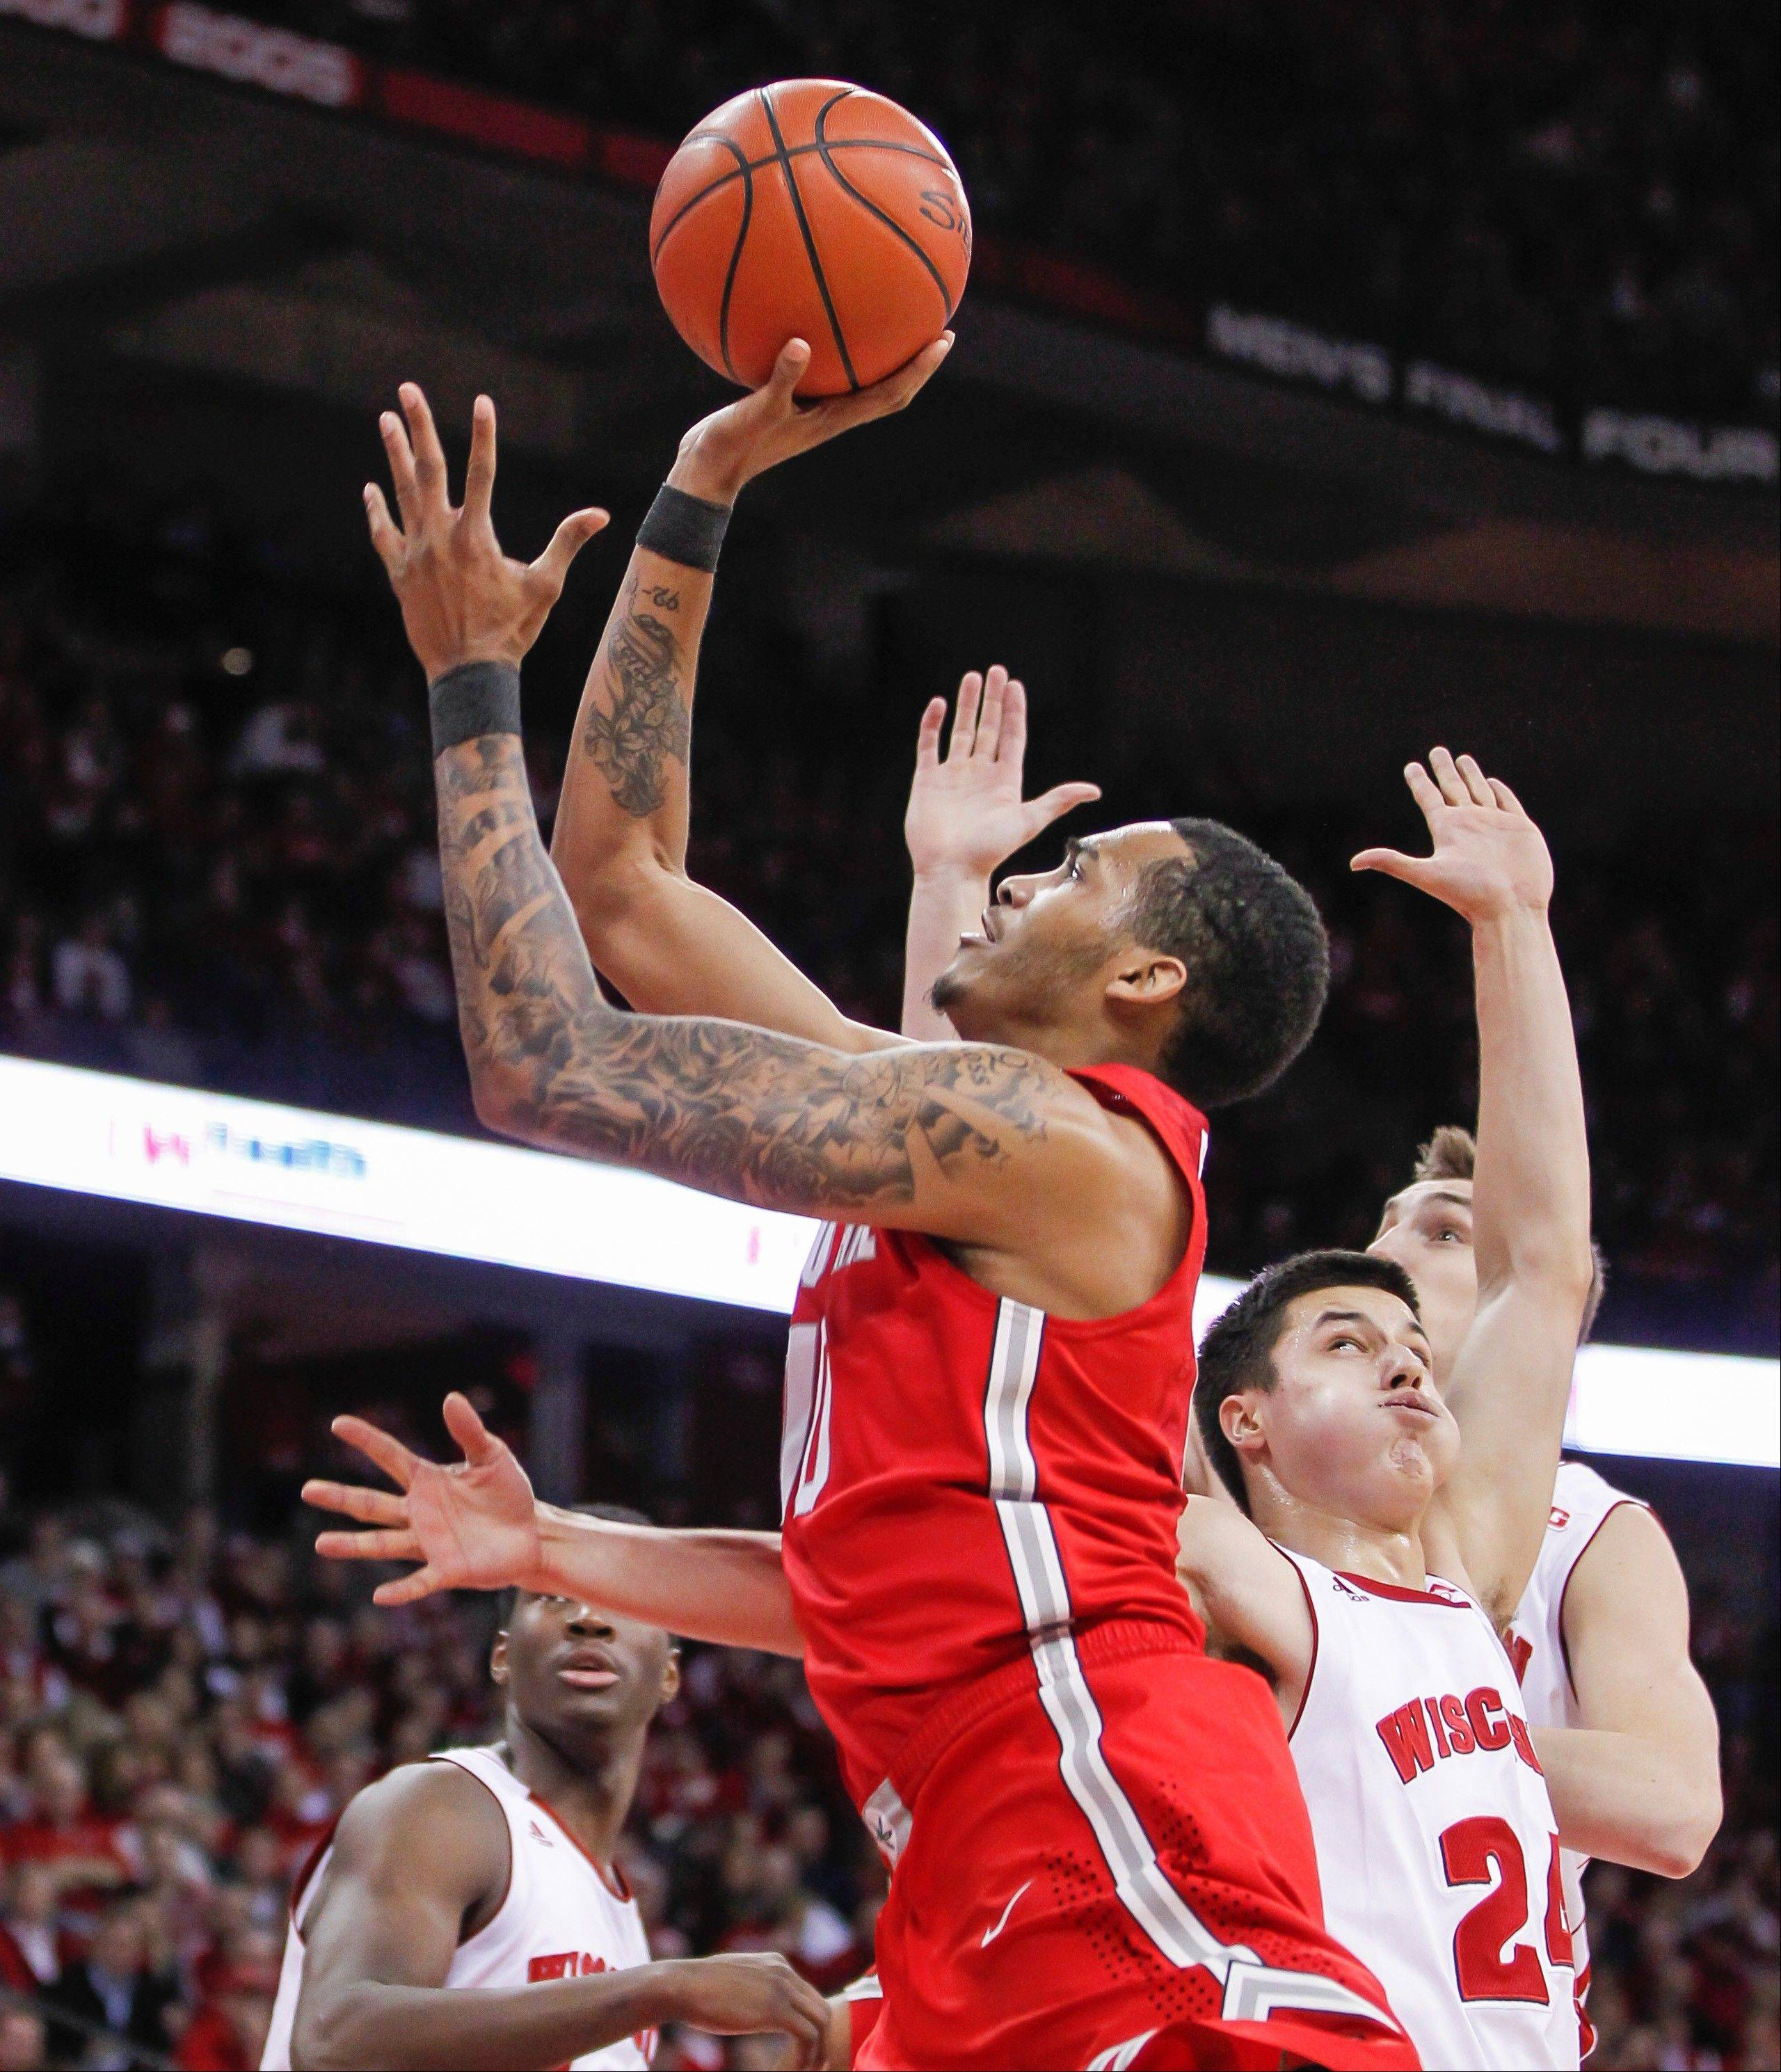 Ohio State's LaQuinton Ross shoots past Wisconsin's Bronson Koenig (24) during the first half of an NCAA college basketball game Saturday, Feb. 1, 2014, in Madison, Wis. Ross had a team-high 13 points in Ohio State's 59-58 win.